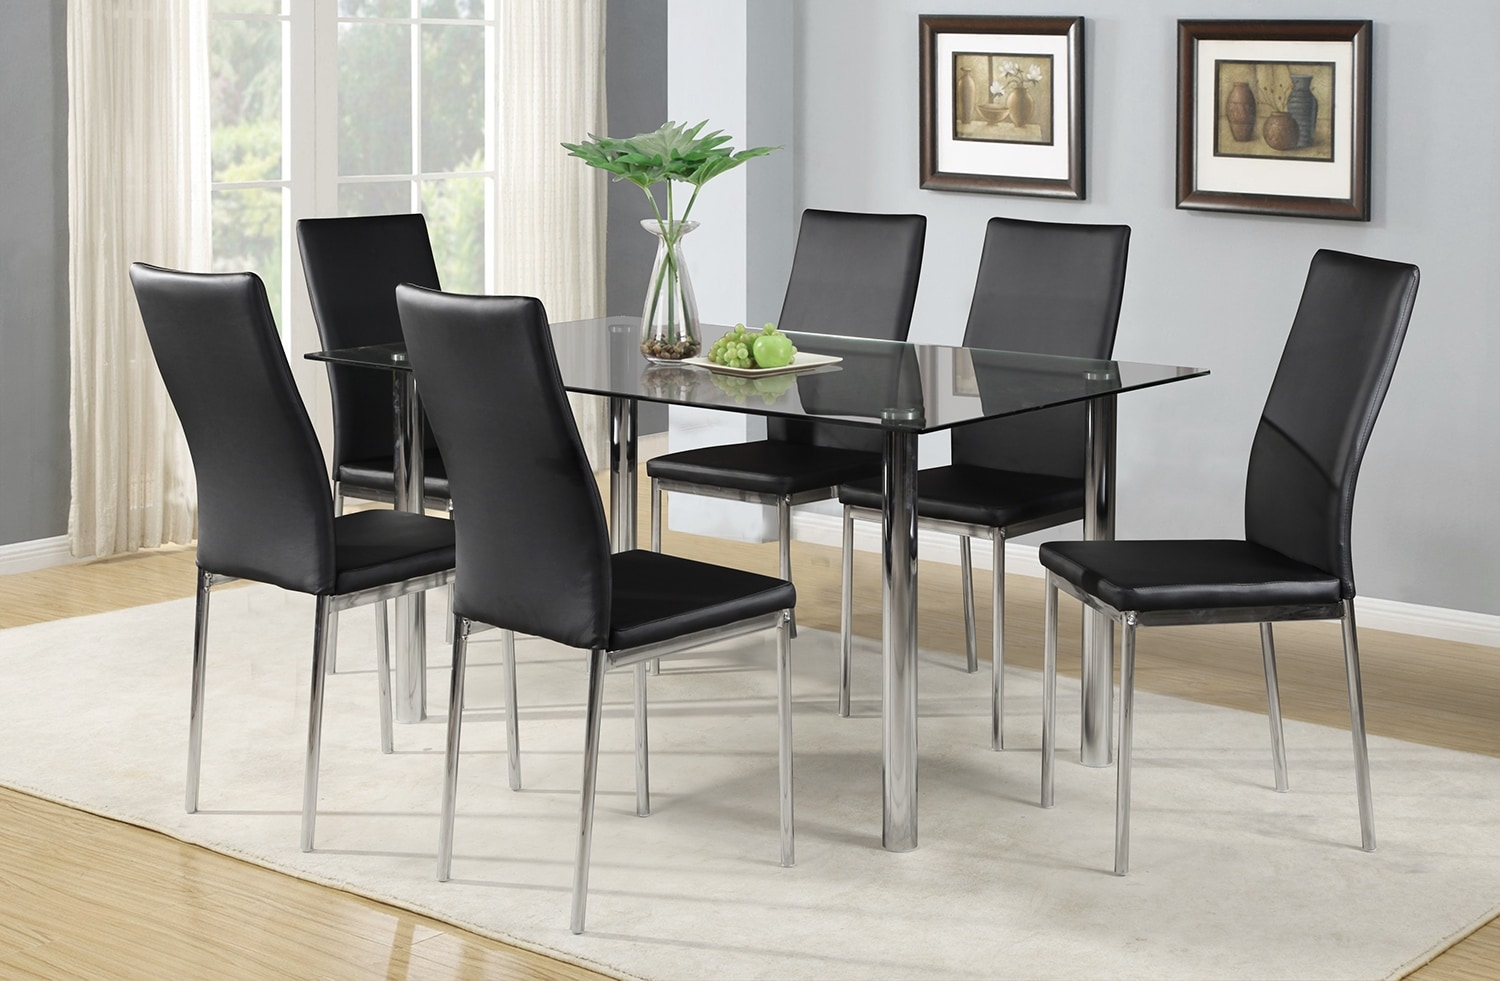 Koda 7-Piece Dining Package – Black